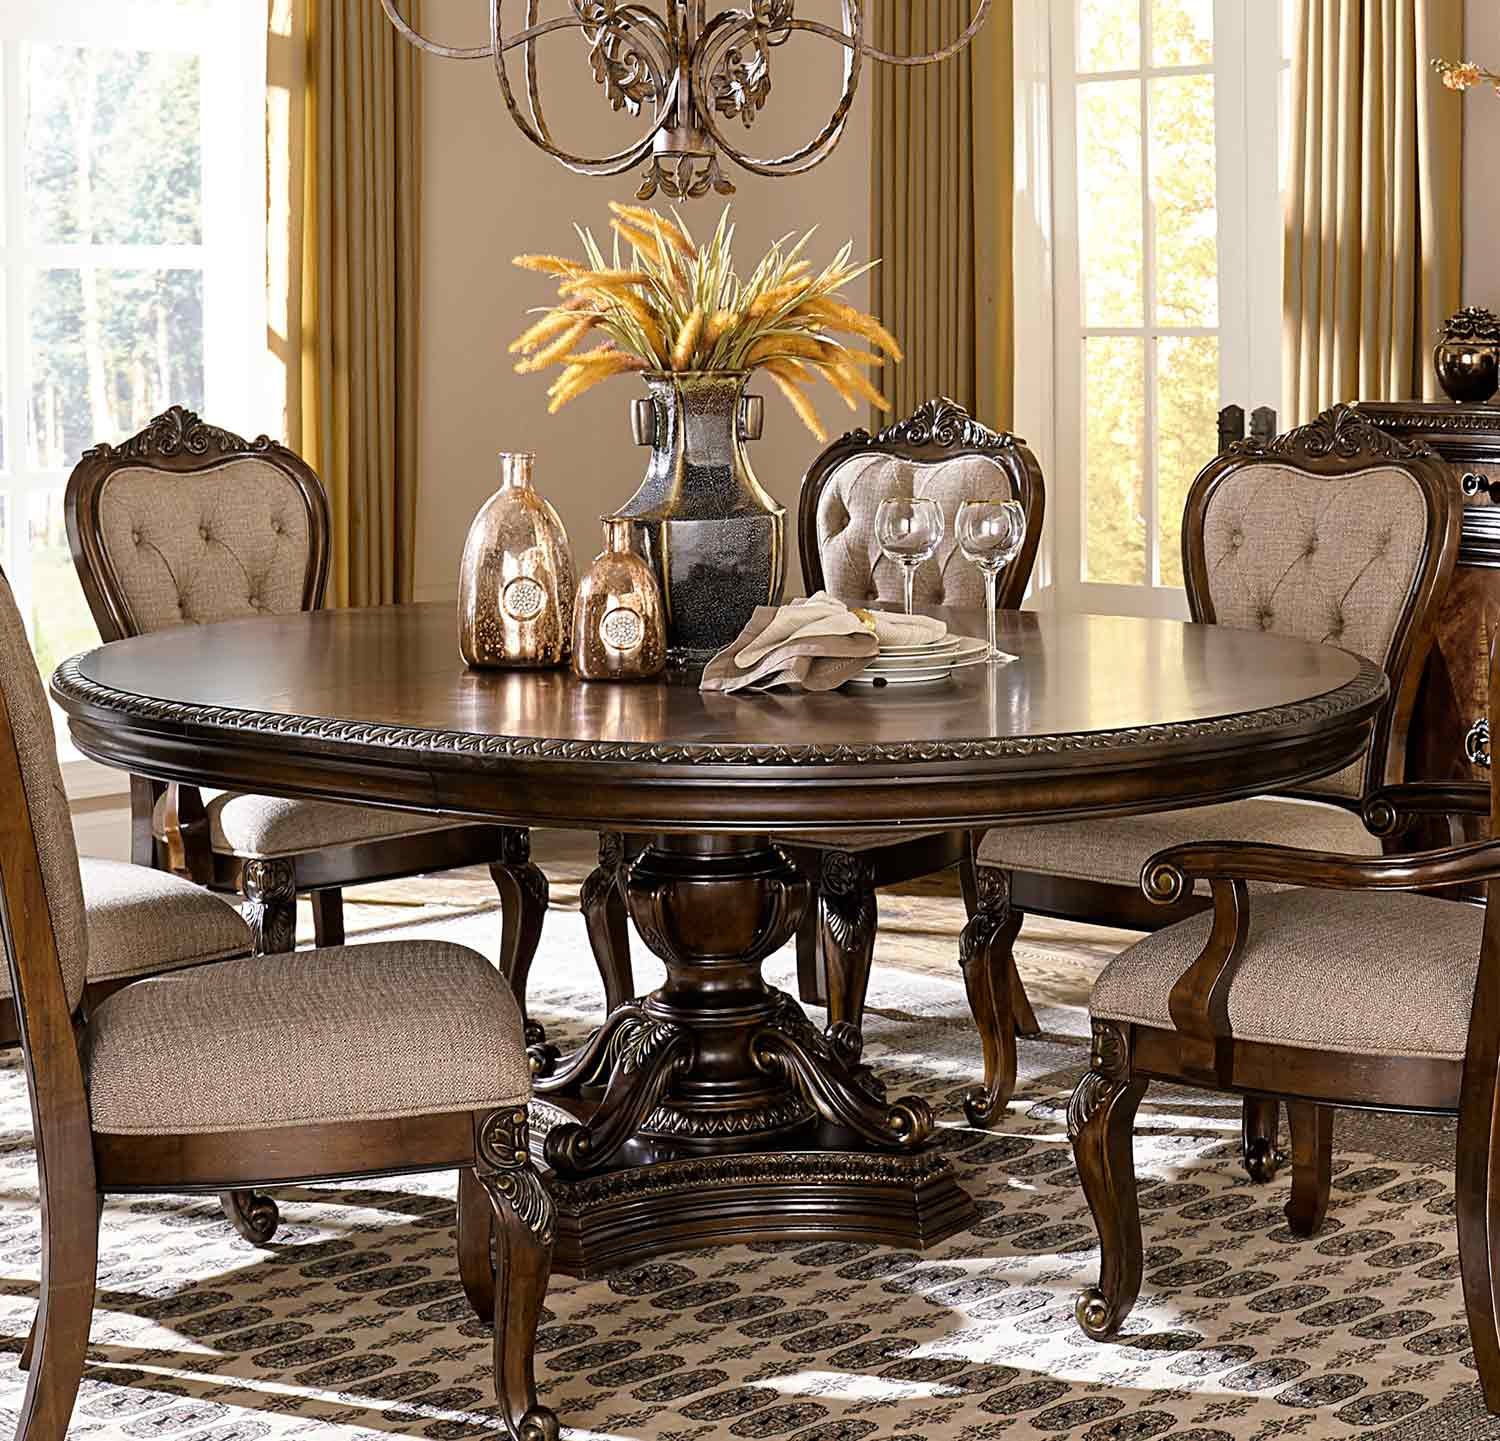 homelegance bonaventure park round oval dining set gold highlighted cherry 1935 76 din set. Black Bedroom Furniture Sets. Home Design Ideas